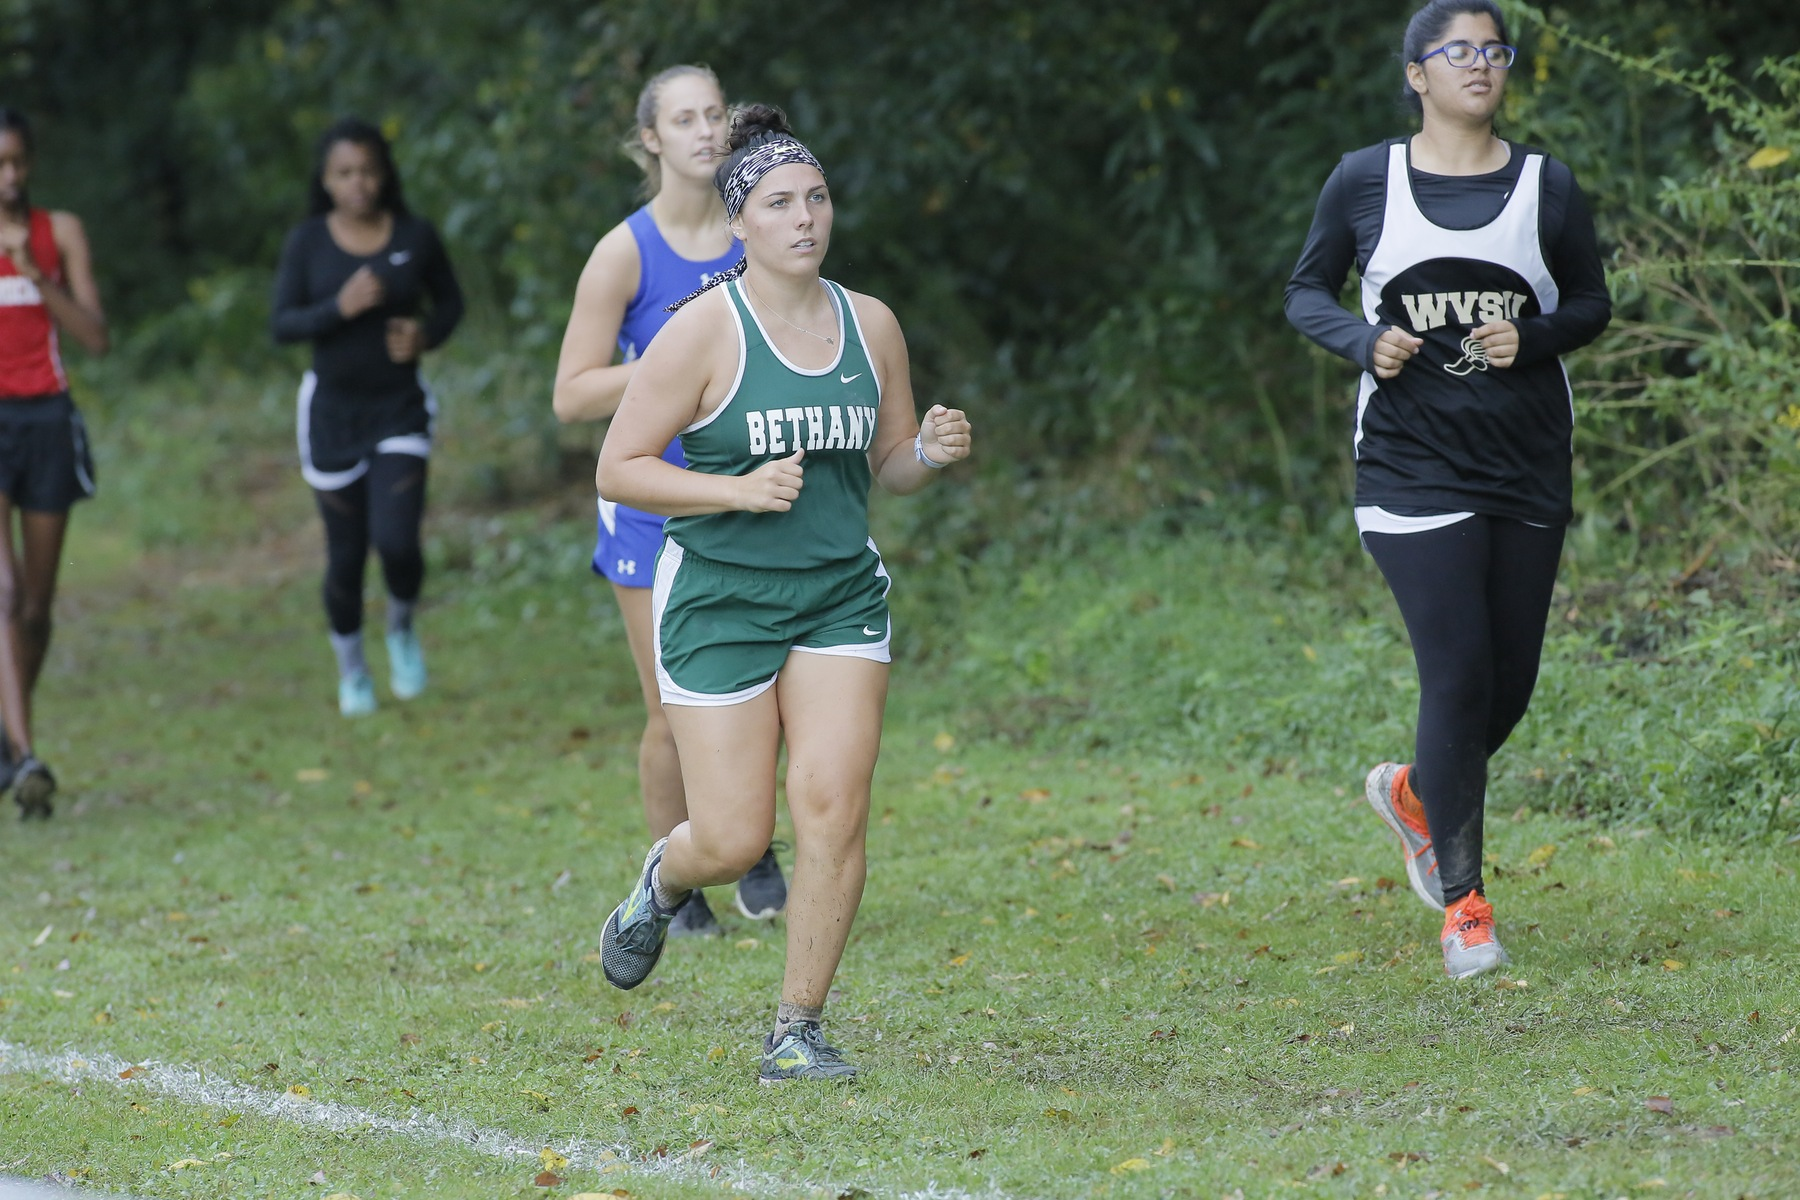 Cross Country Hosts Annual Bethany Invitational